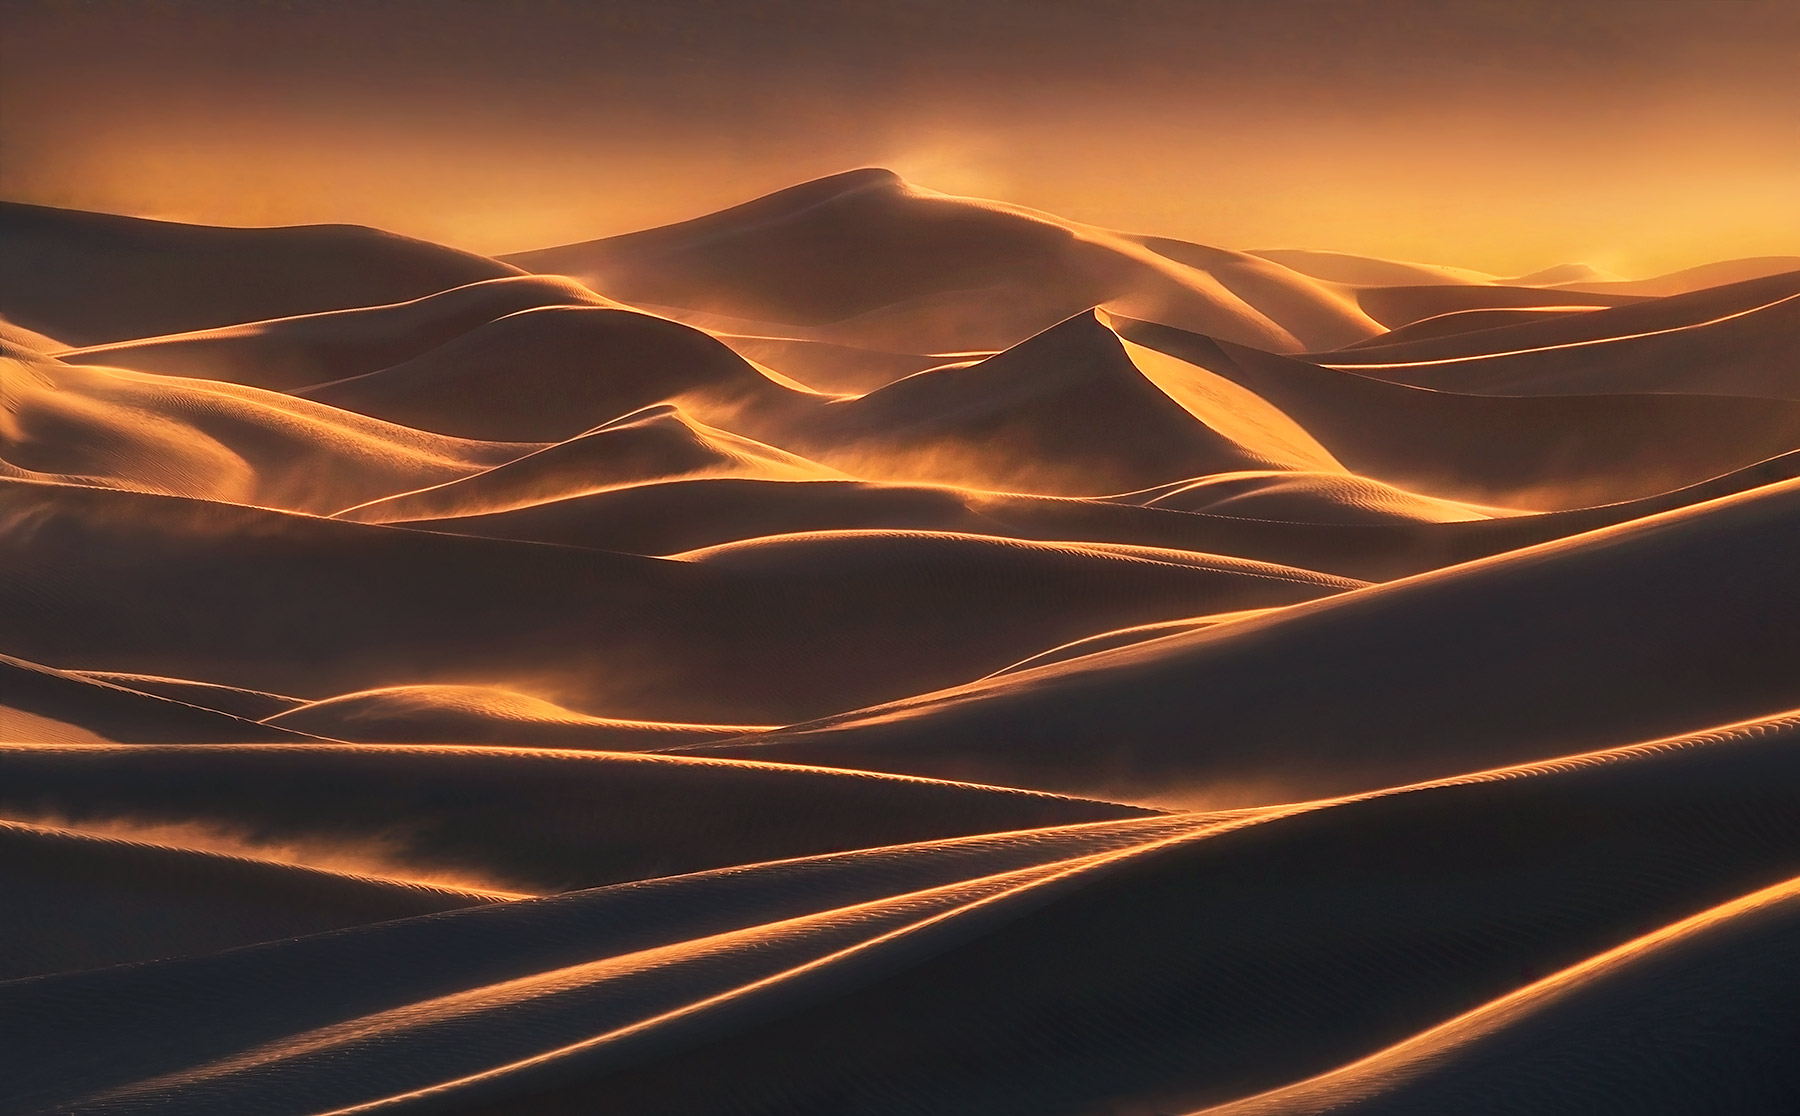 Death Valley, Dunes, Winds, Sunset, photo